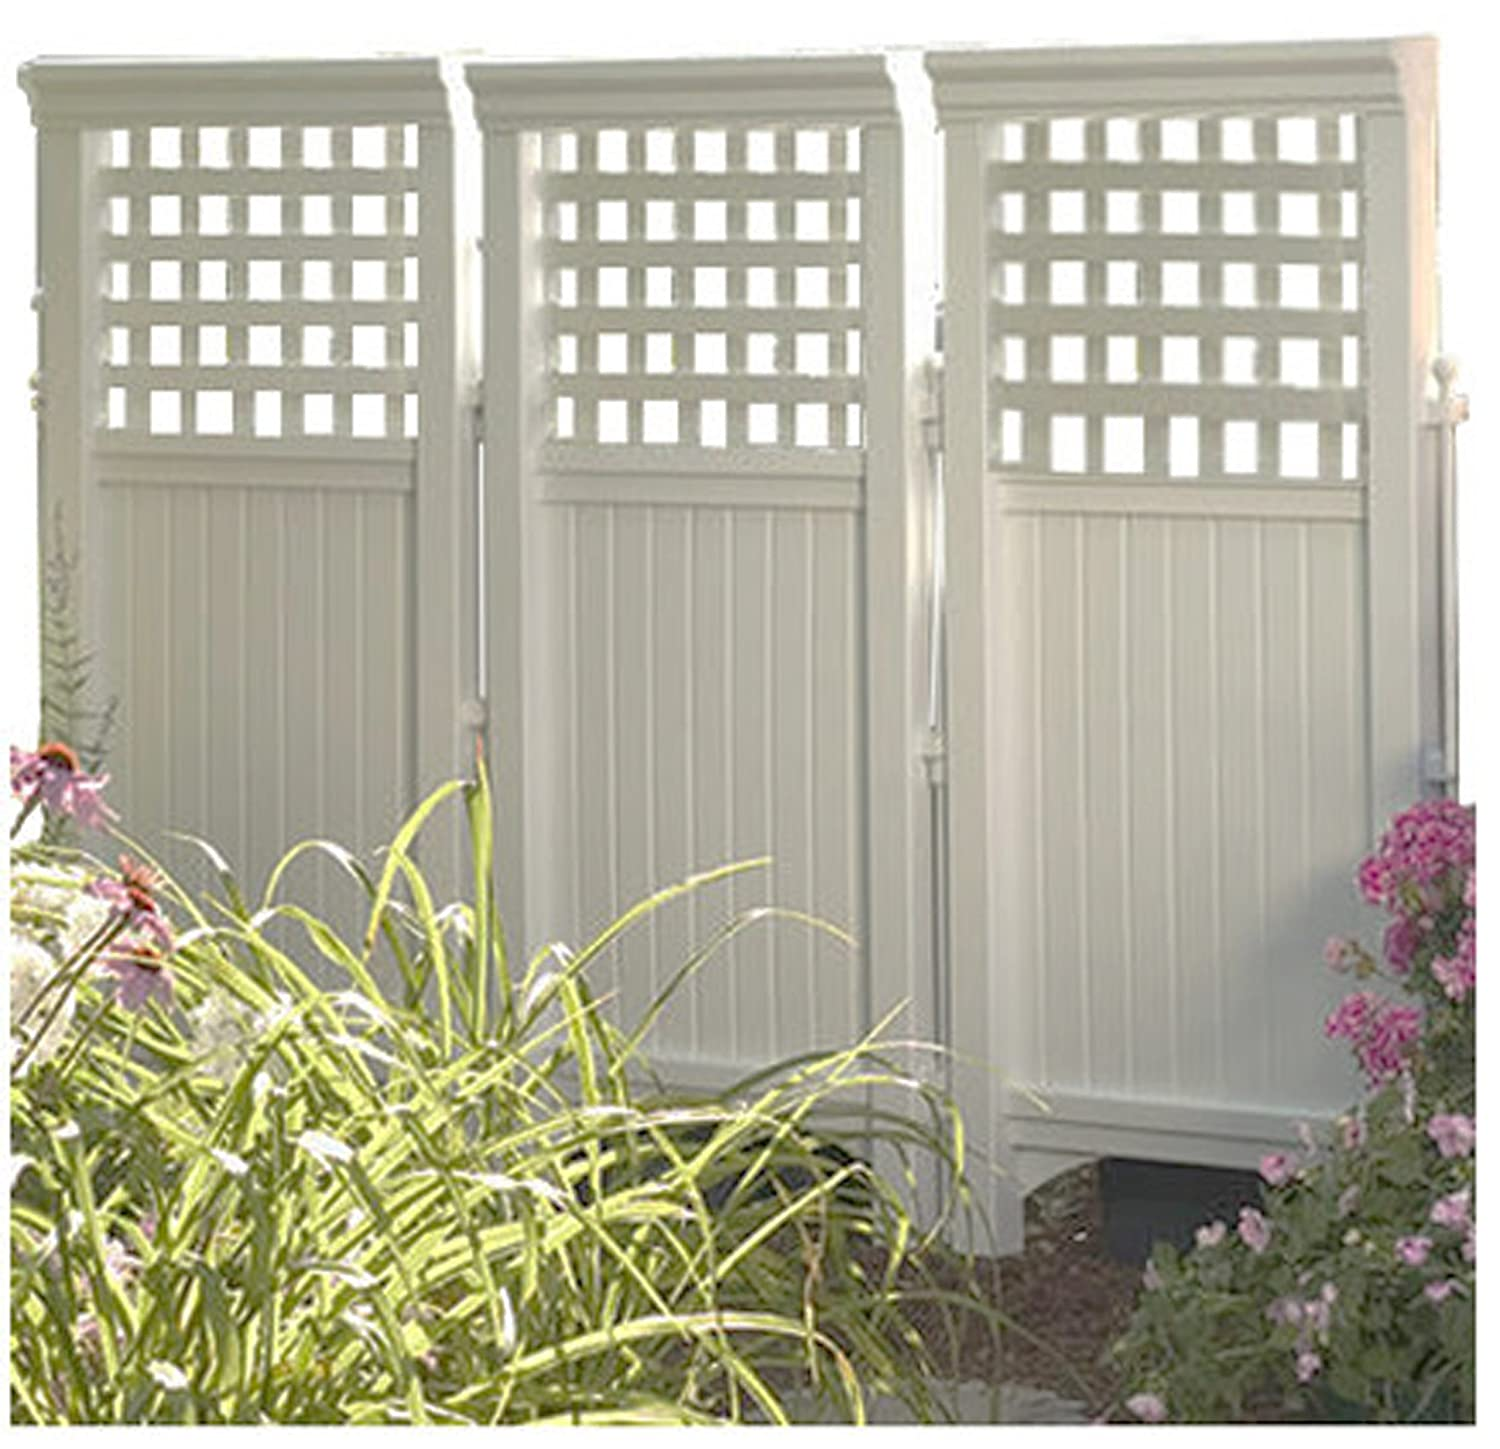 Amazon.com : Made In USA White UV Resistant 4 Panel Resin Outdoor Privacy  Screen Hides Garbage Cans, Recyclables, Bikes. Portable Outdoor Patio Screen  ...